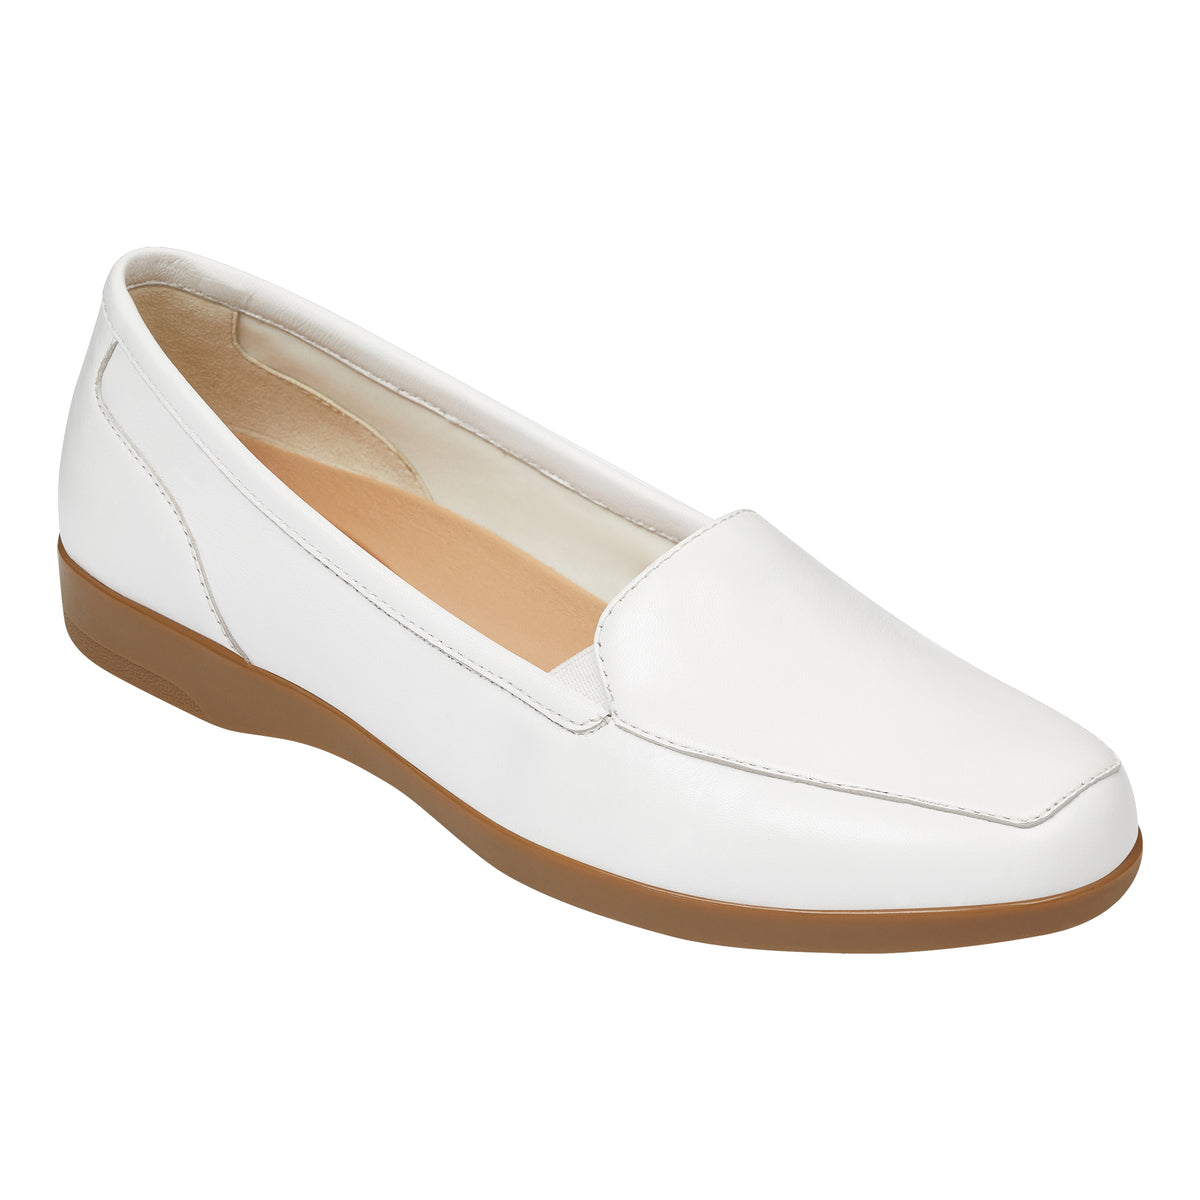 devitt-casual-flats-in-white-leather